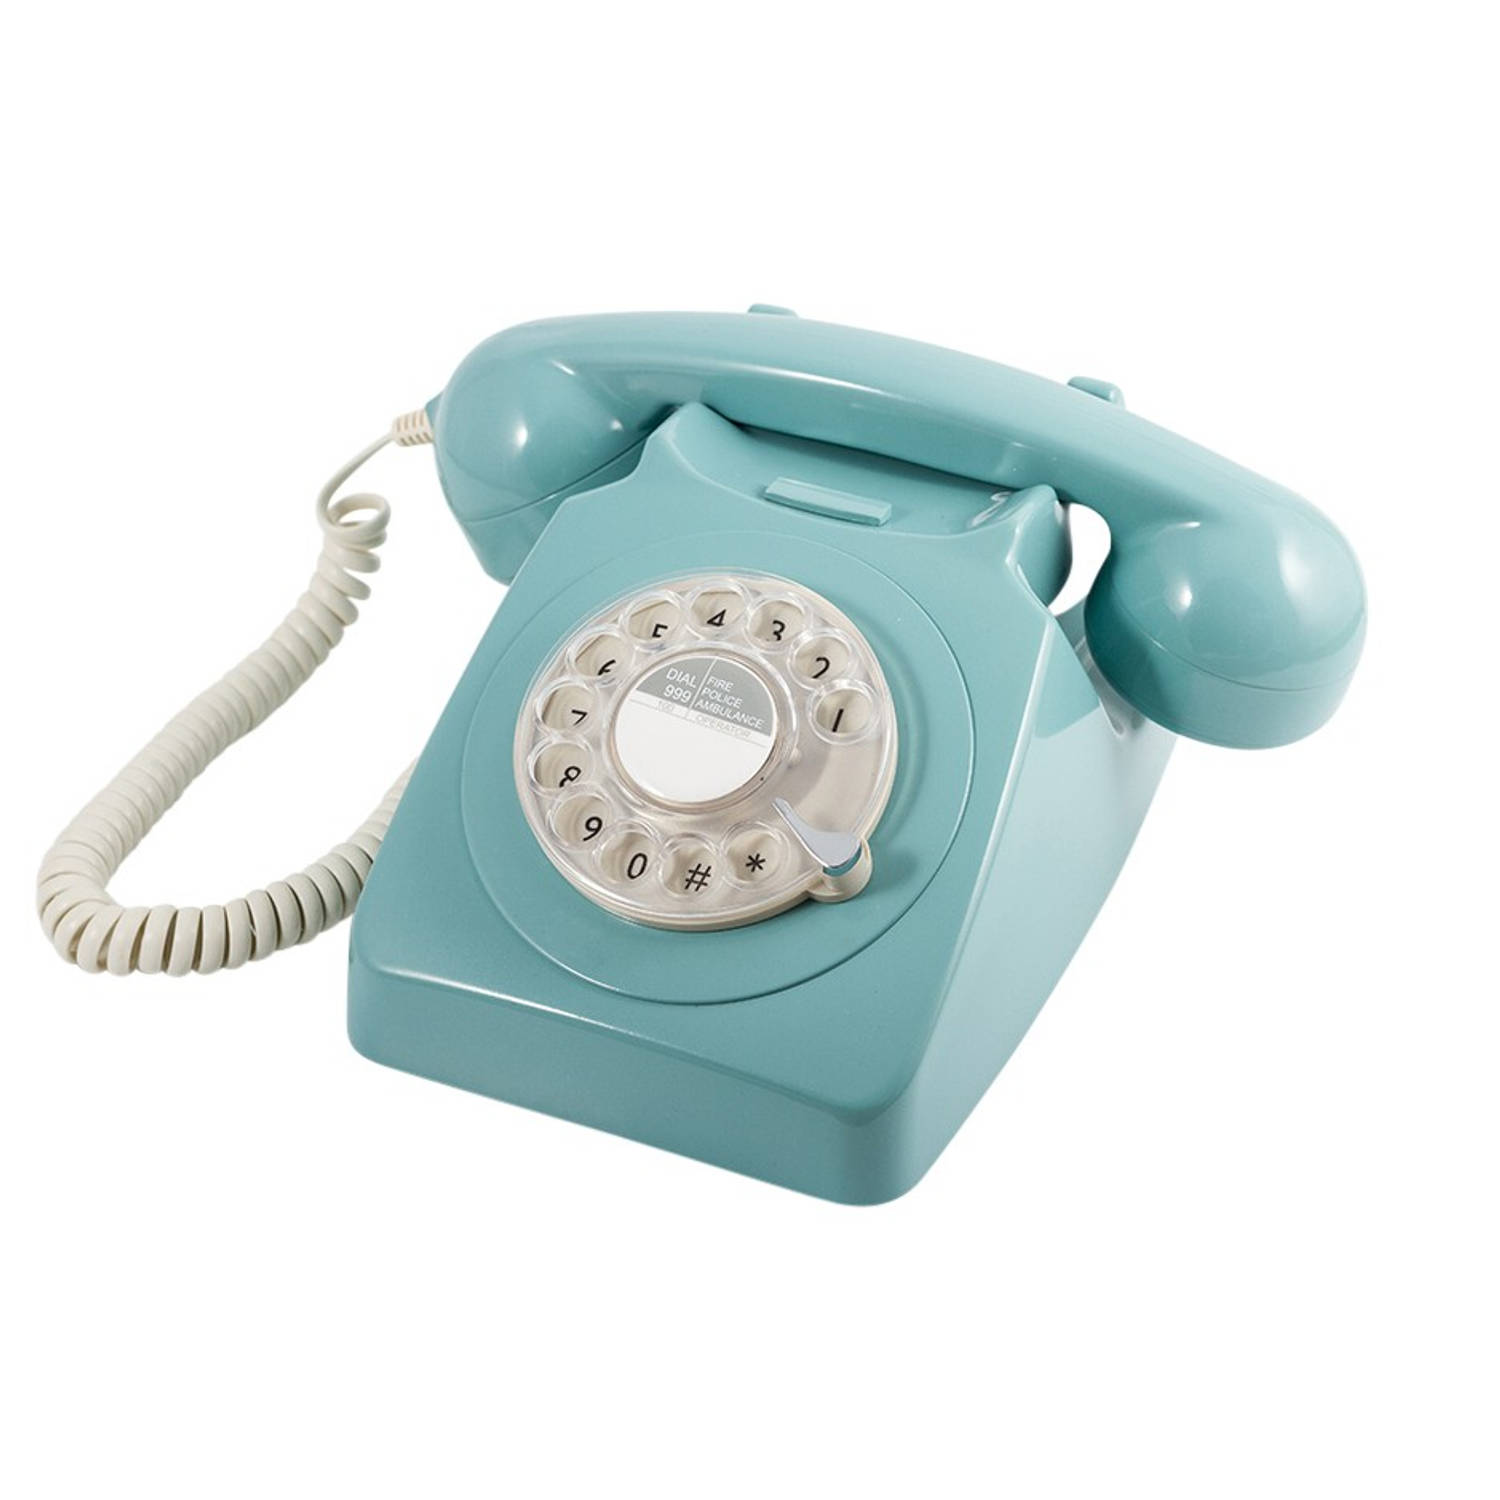 GPO 746 Draaischijf Retro Telefoon French Blue